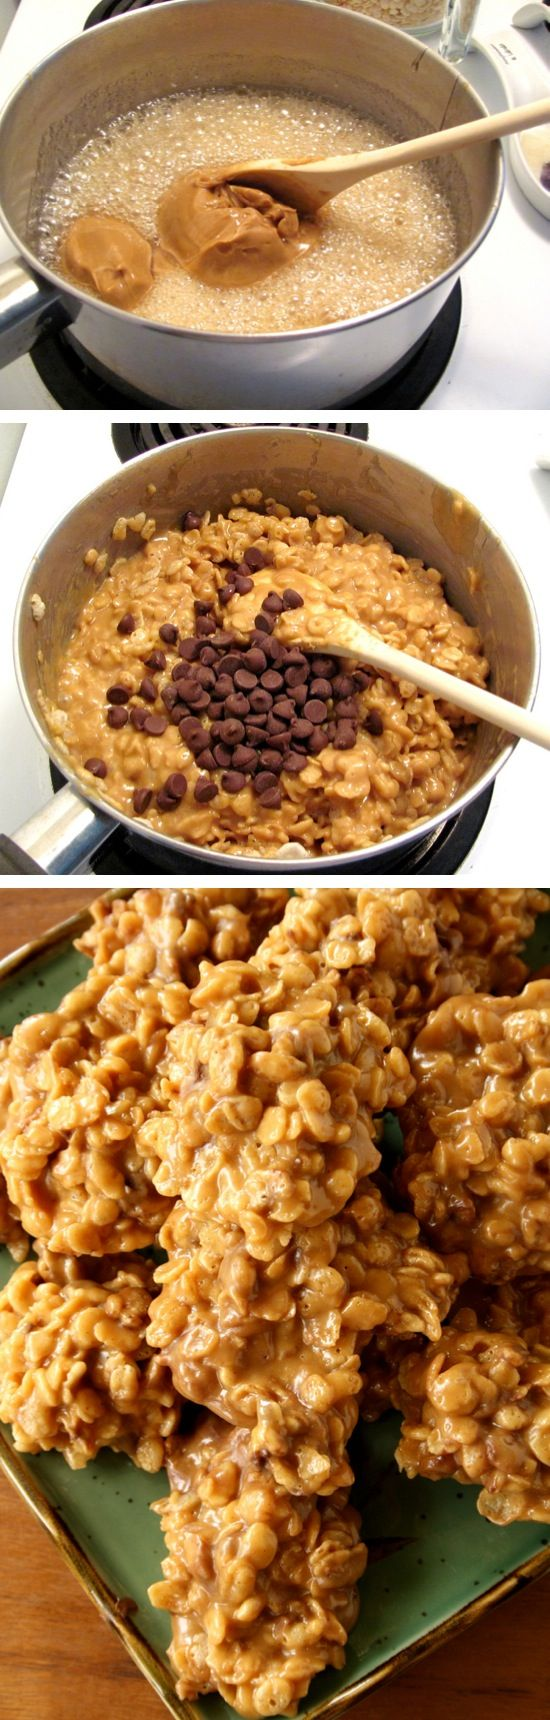 Stove Top Peanut Butter Cereal Cookies   No baking required! Made with Special K, but you could also make them with Rice Krispies or any other cereal.